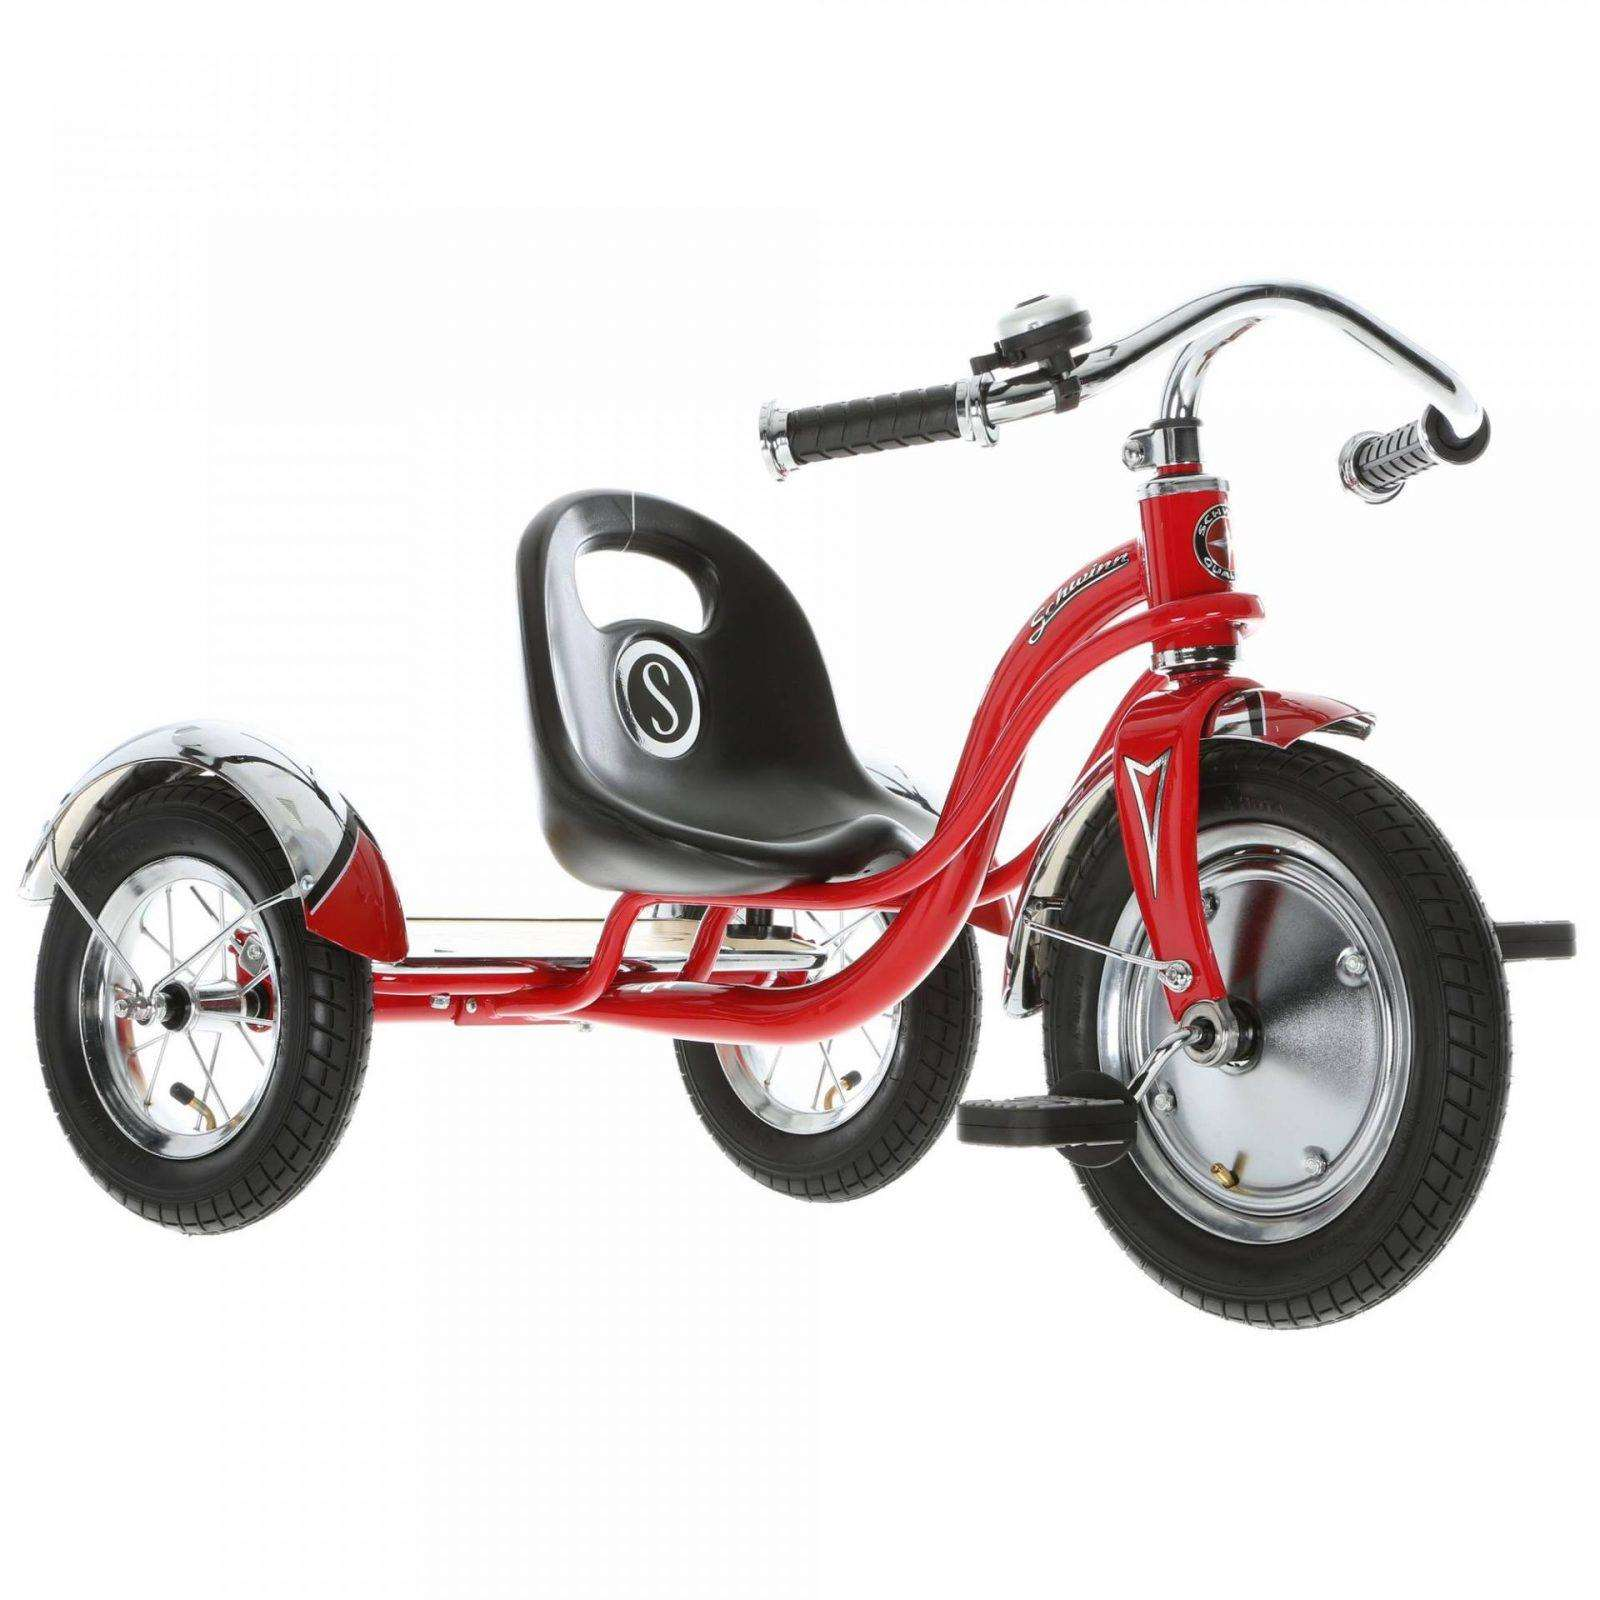 What are dads buying their kids for Christmas?, Trike 1600x1600%, product-review%